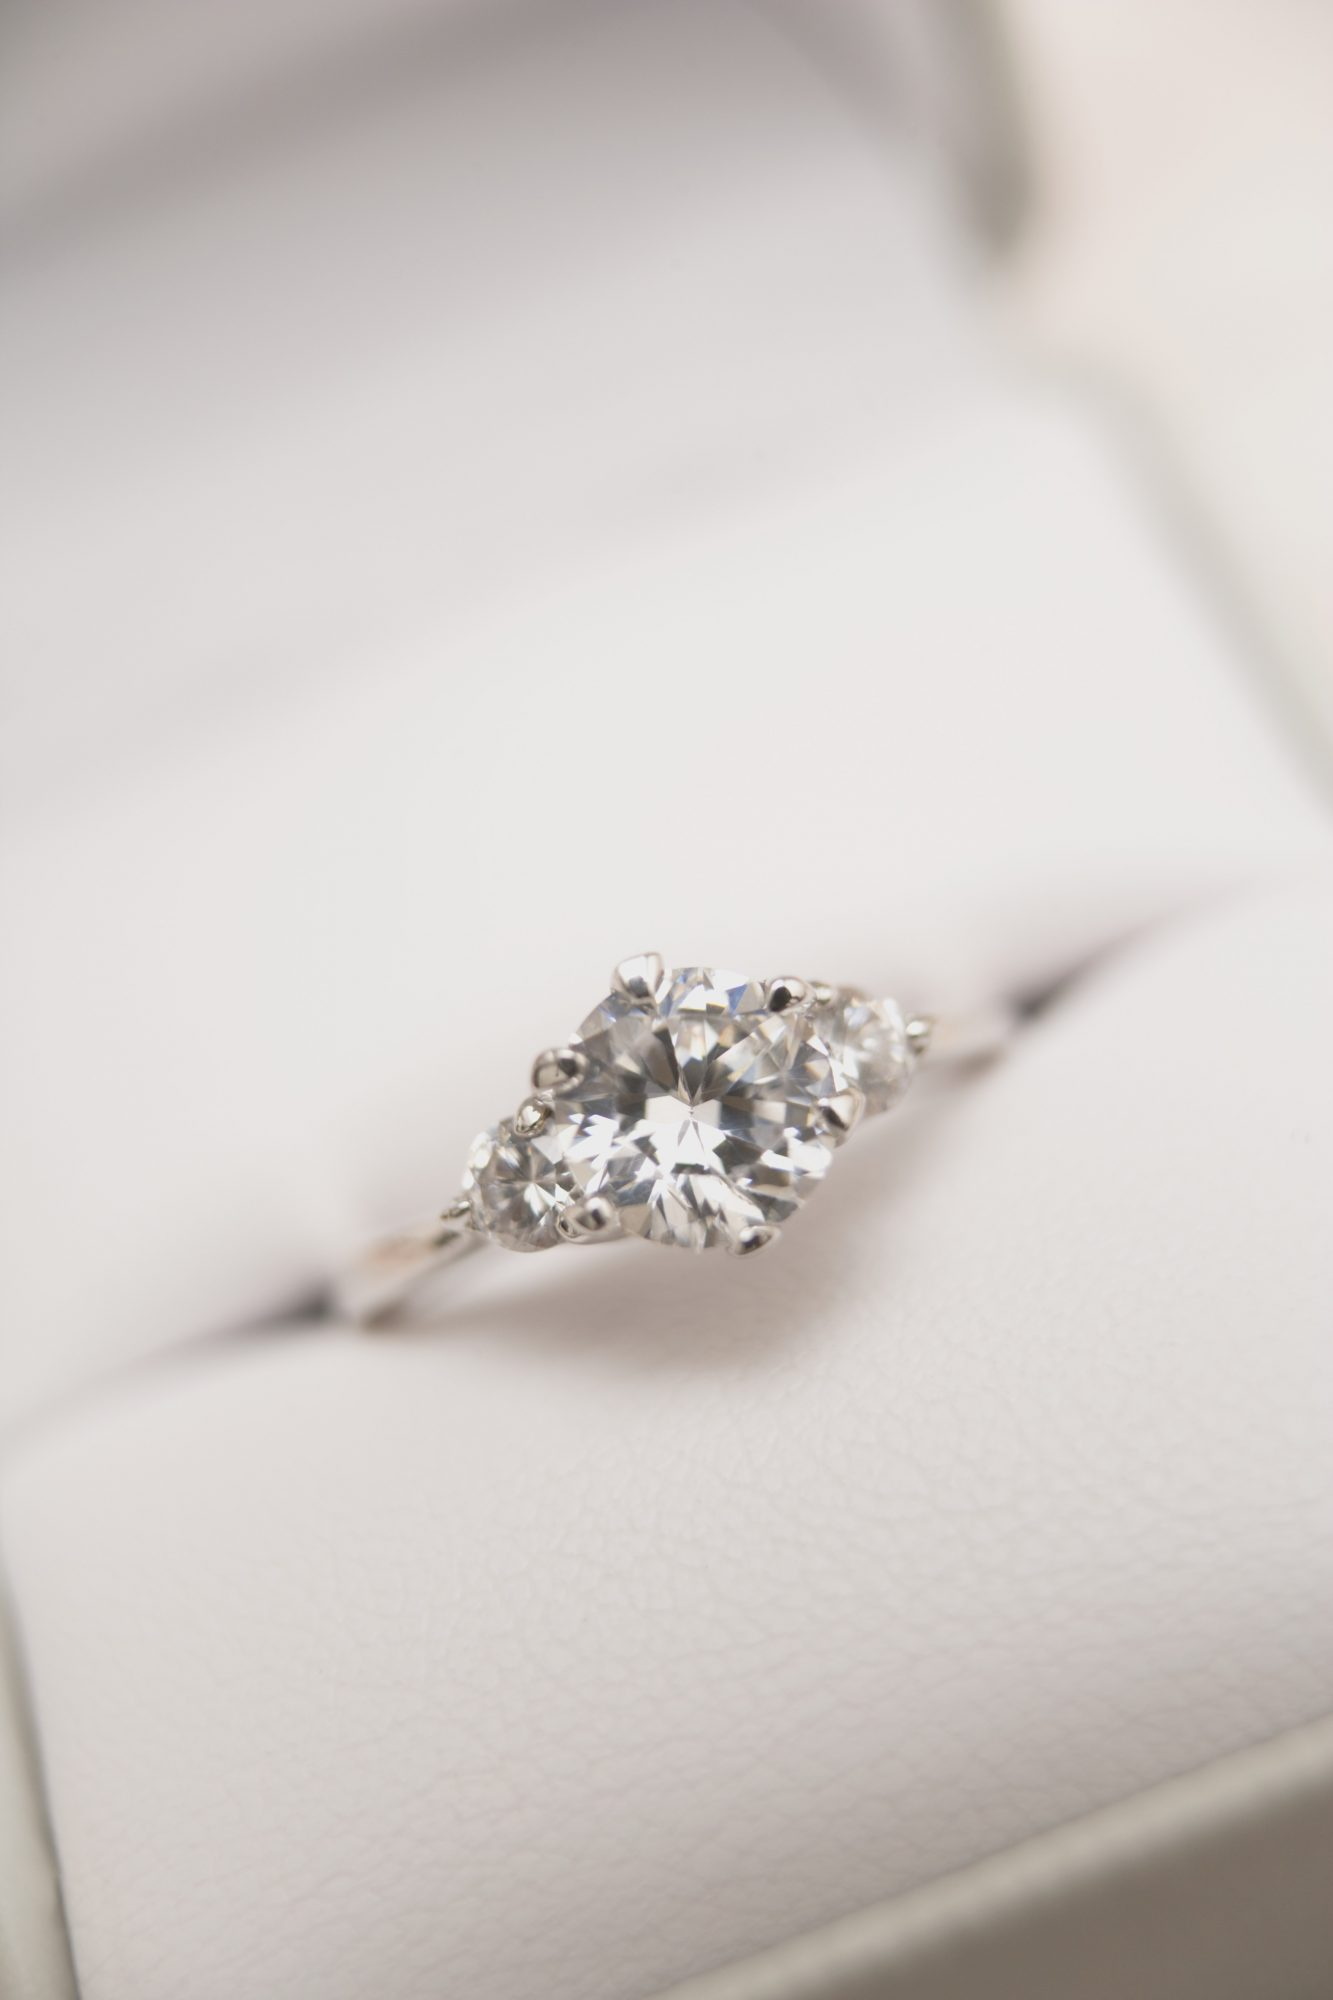 Engagement Ring Wedding Planning